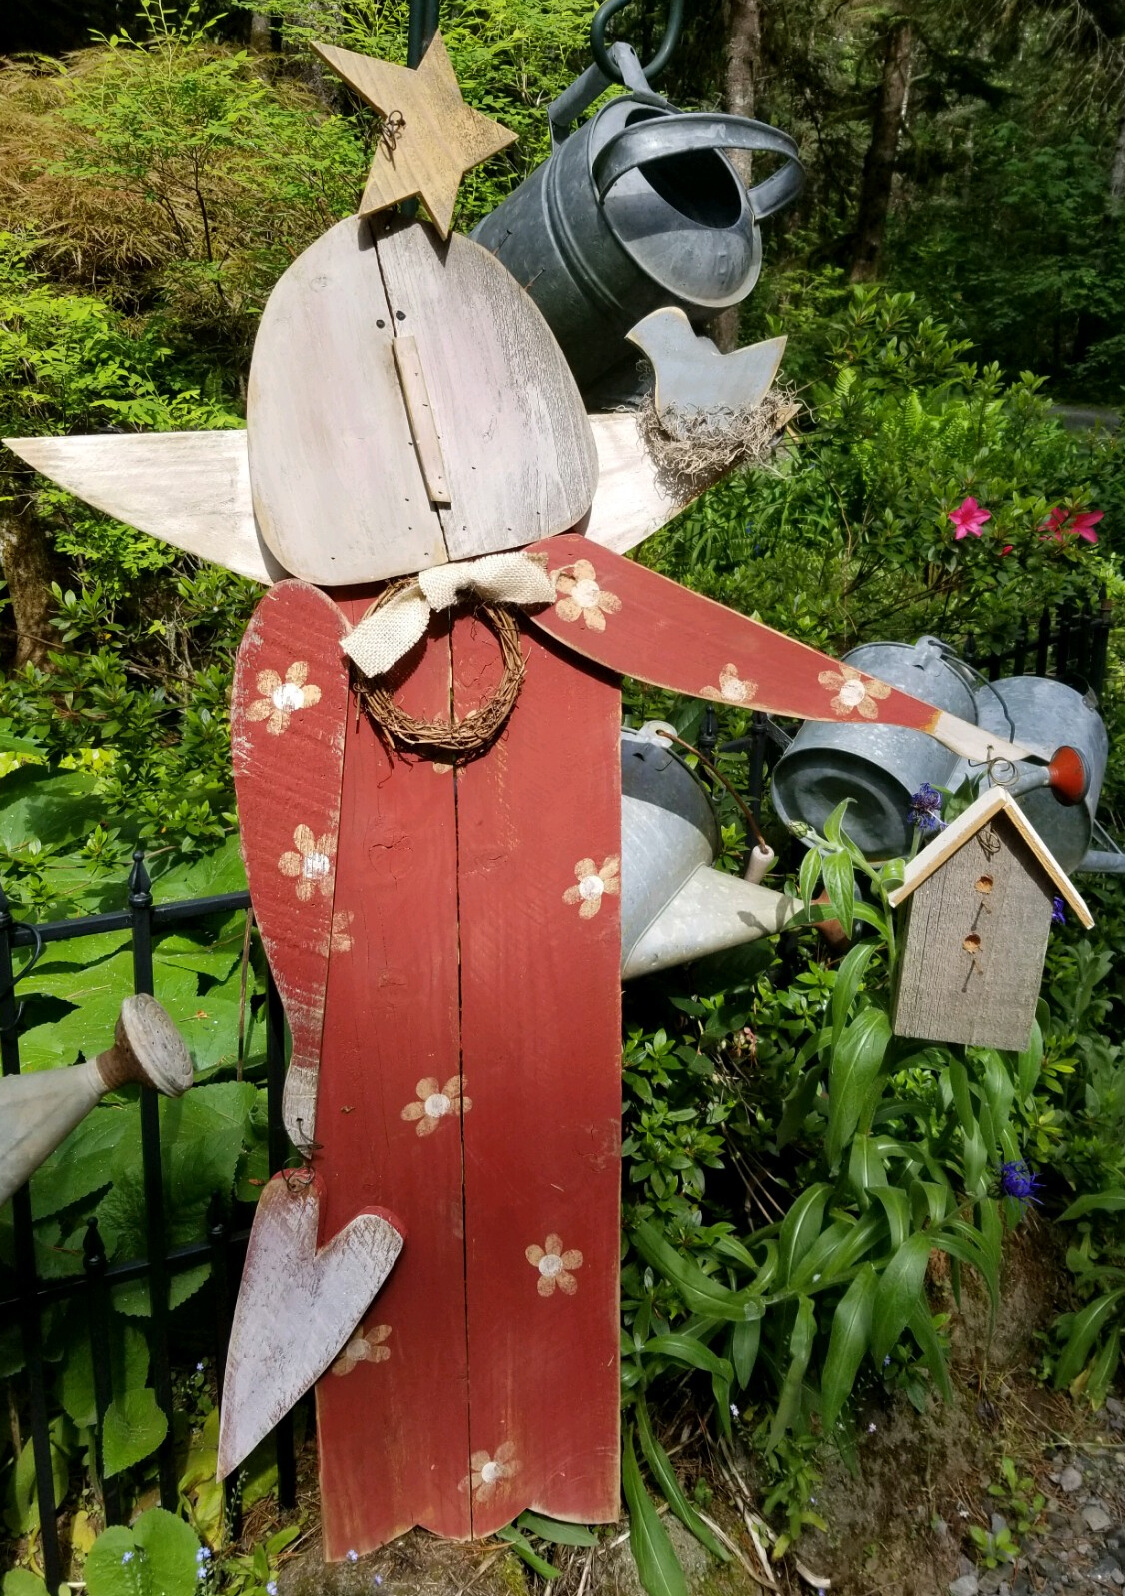 GARDEN ANGEL WORKSHOP